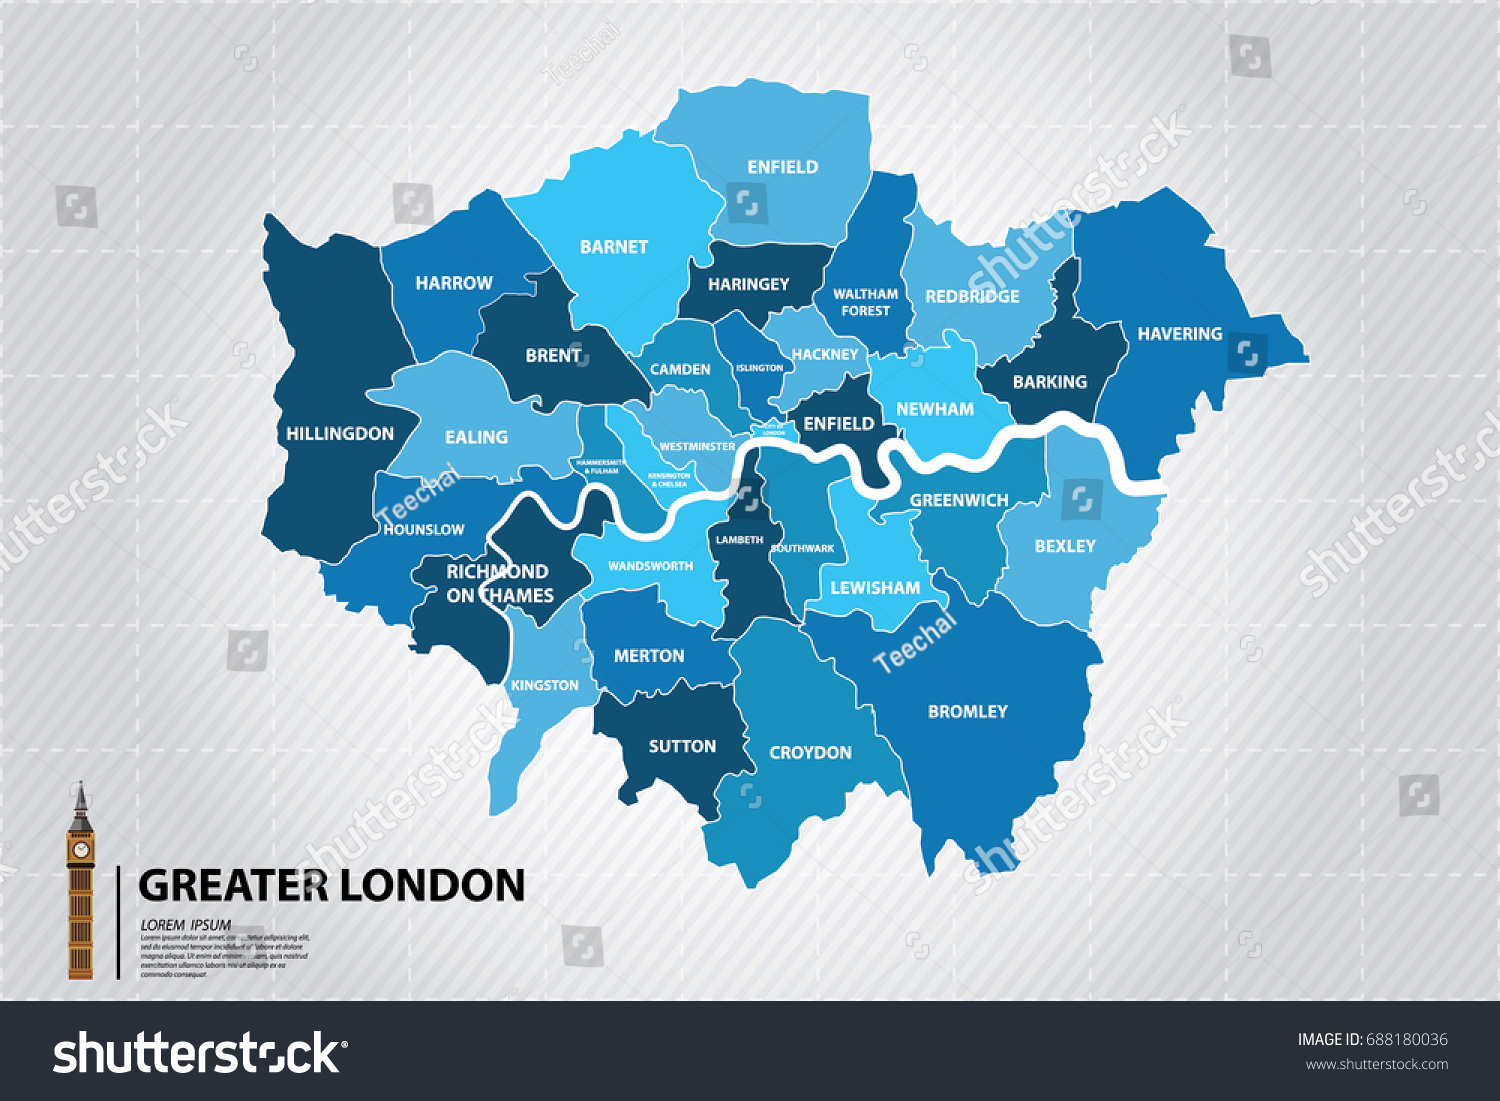 greater london map showing all boroughs big benthe icons of england